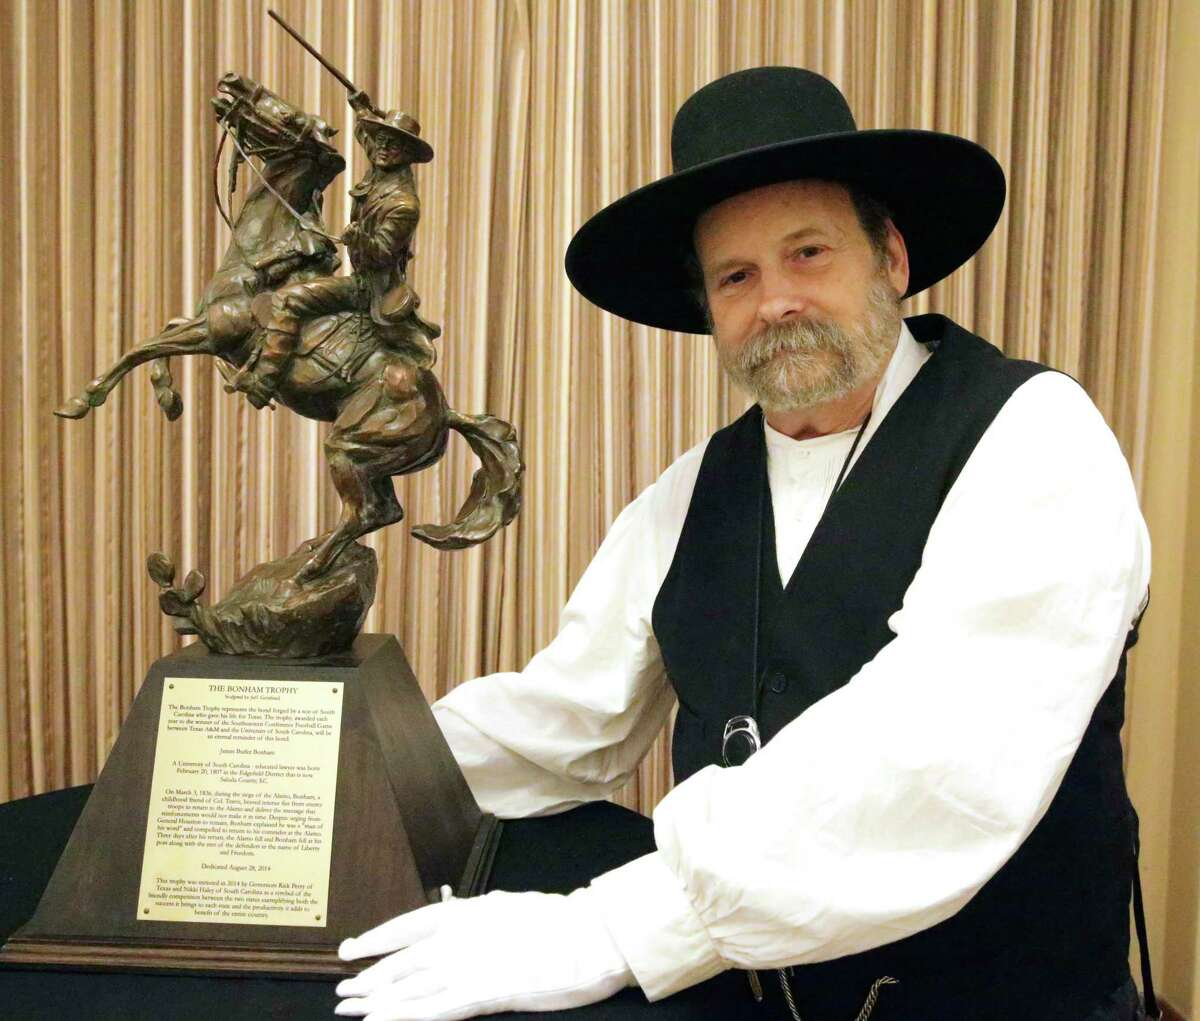 Bruce Winders, former historian and curator at the Alamo, will be one of two primary speakers examining the details and legacy of the 1836 battle in a panel discussion Tuesday.